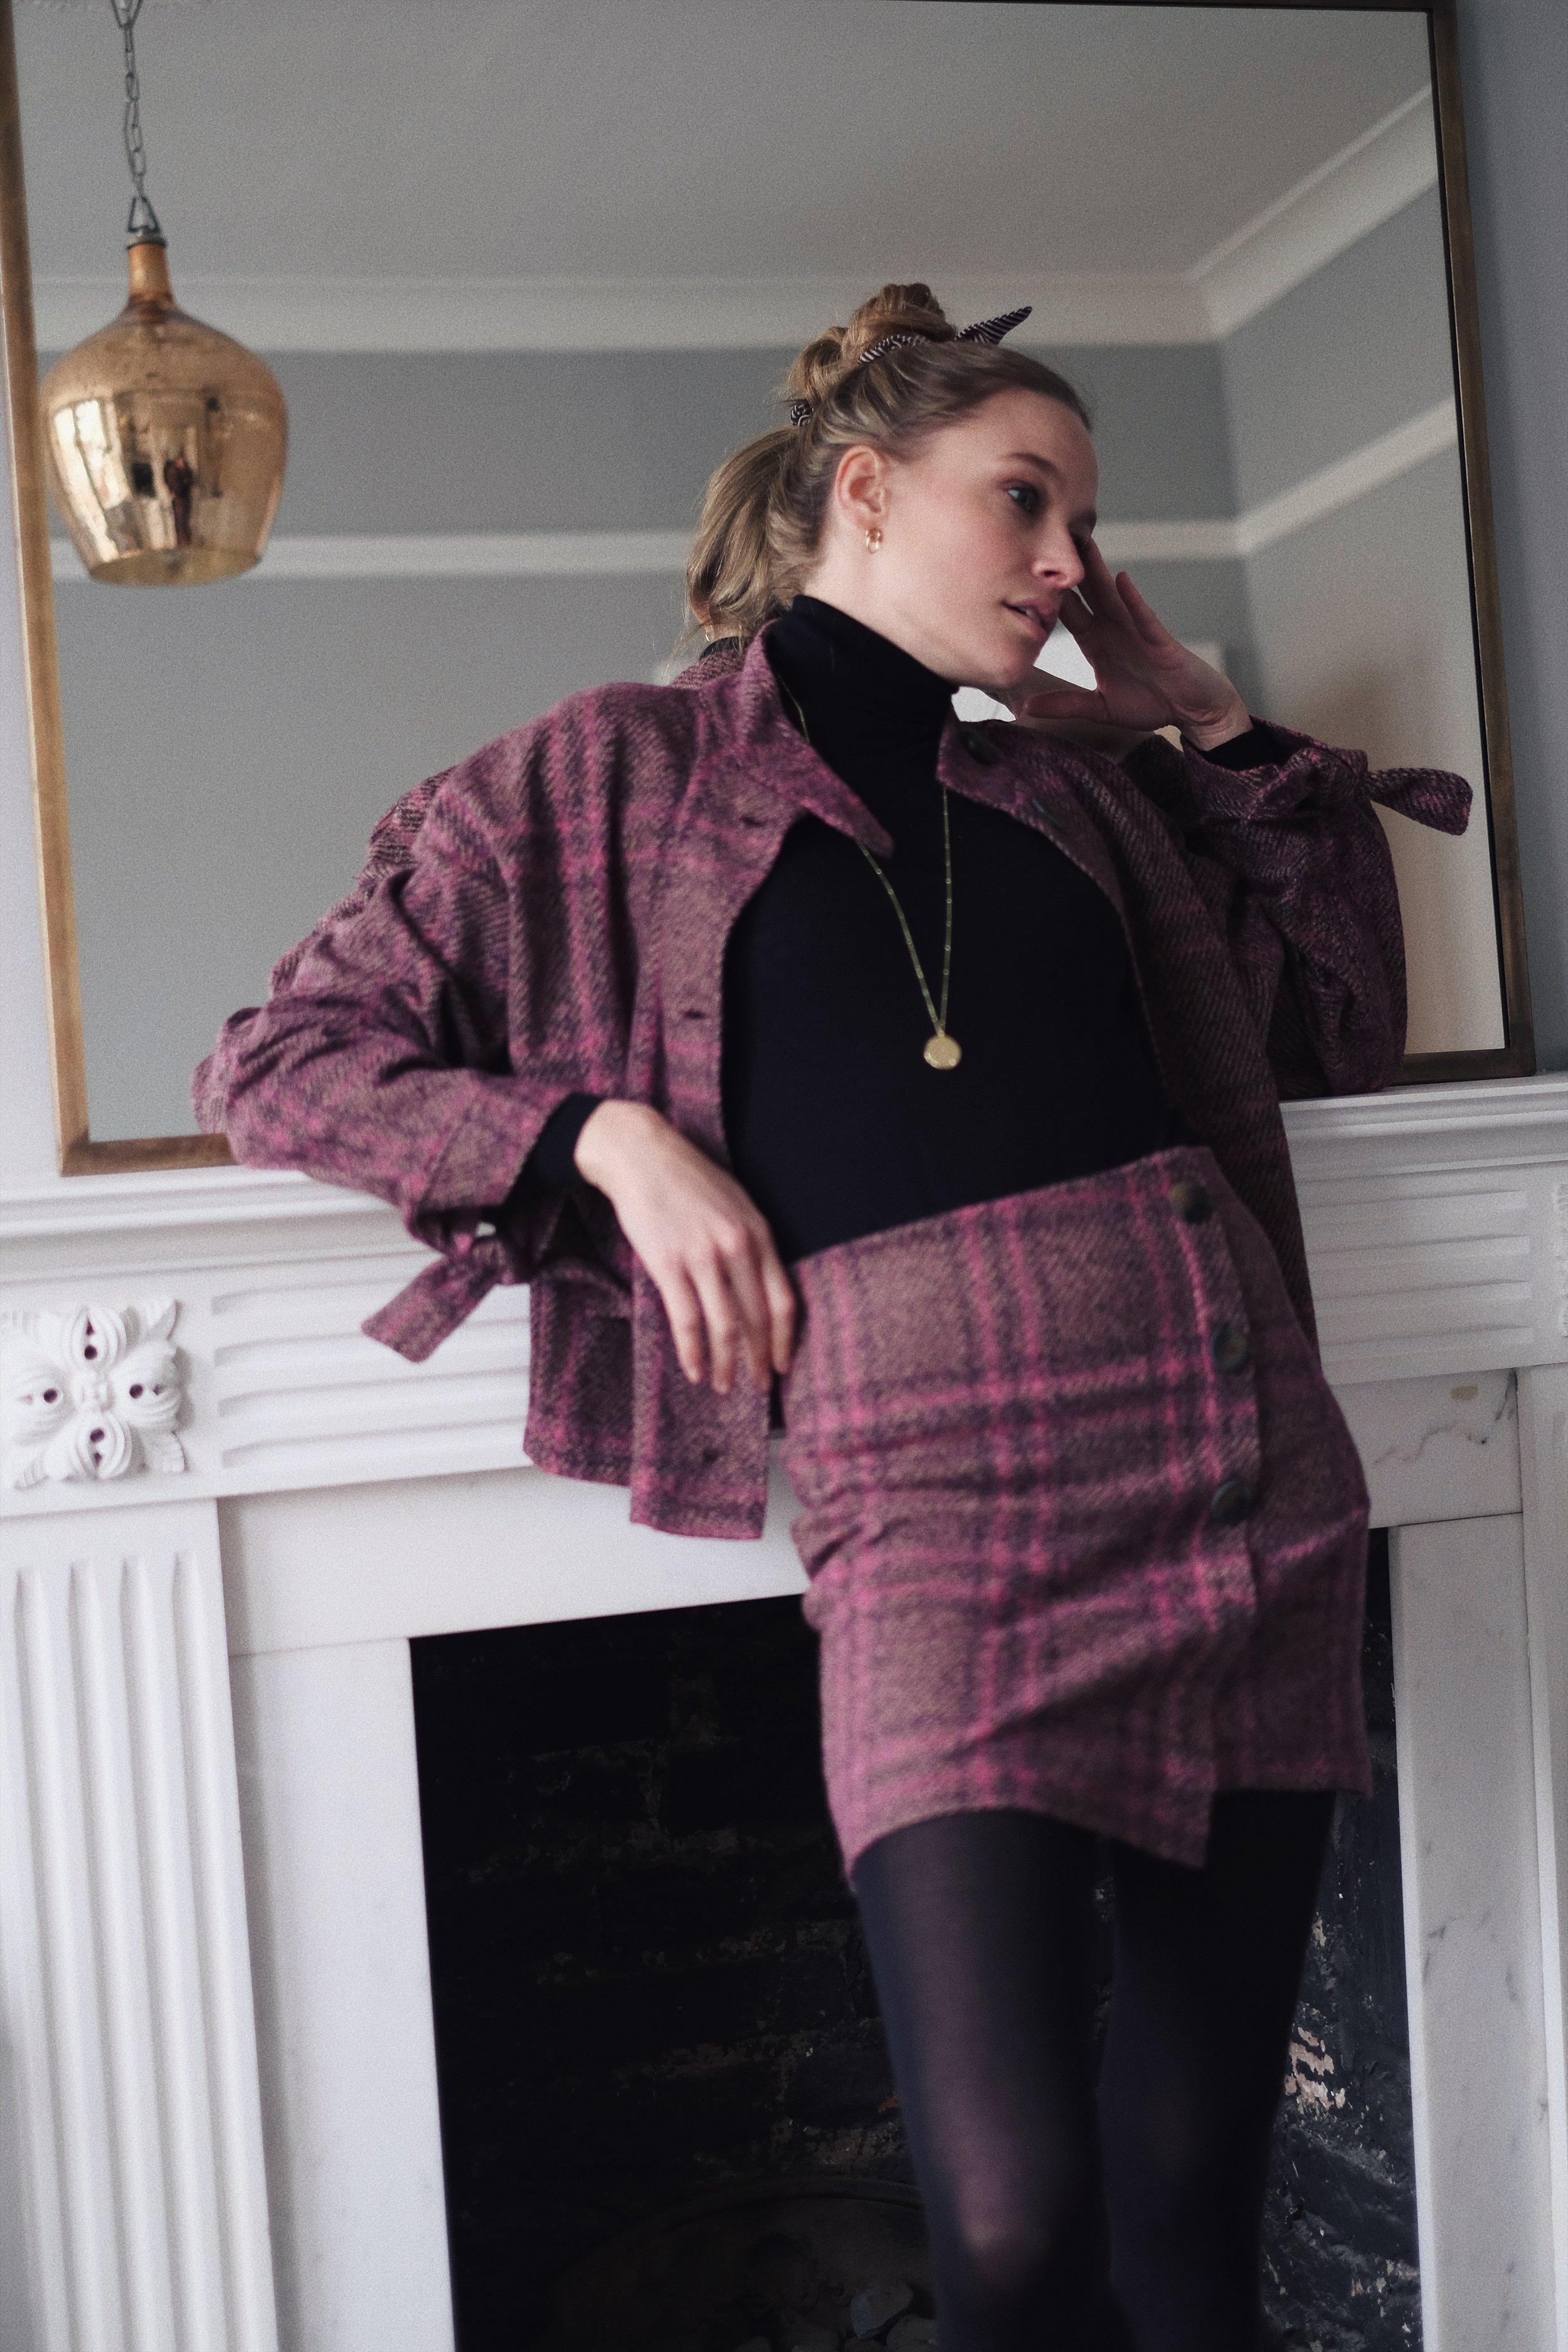 Annabell from www.the4ofus.co.uk is wearing a check tweed two-piece set from mango, with falke tights and a uniqlo merino wool roll neck, gold necklace by Ania Haie